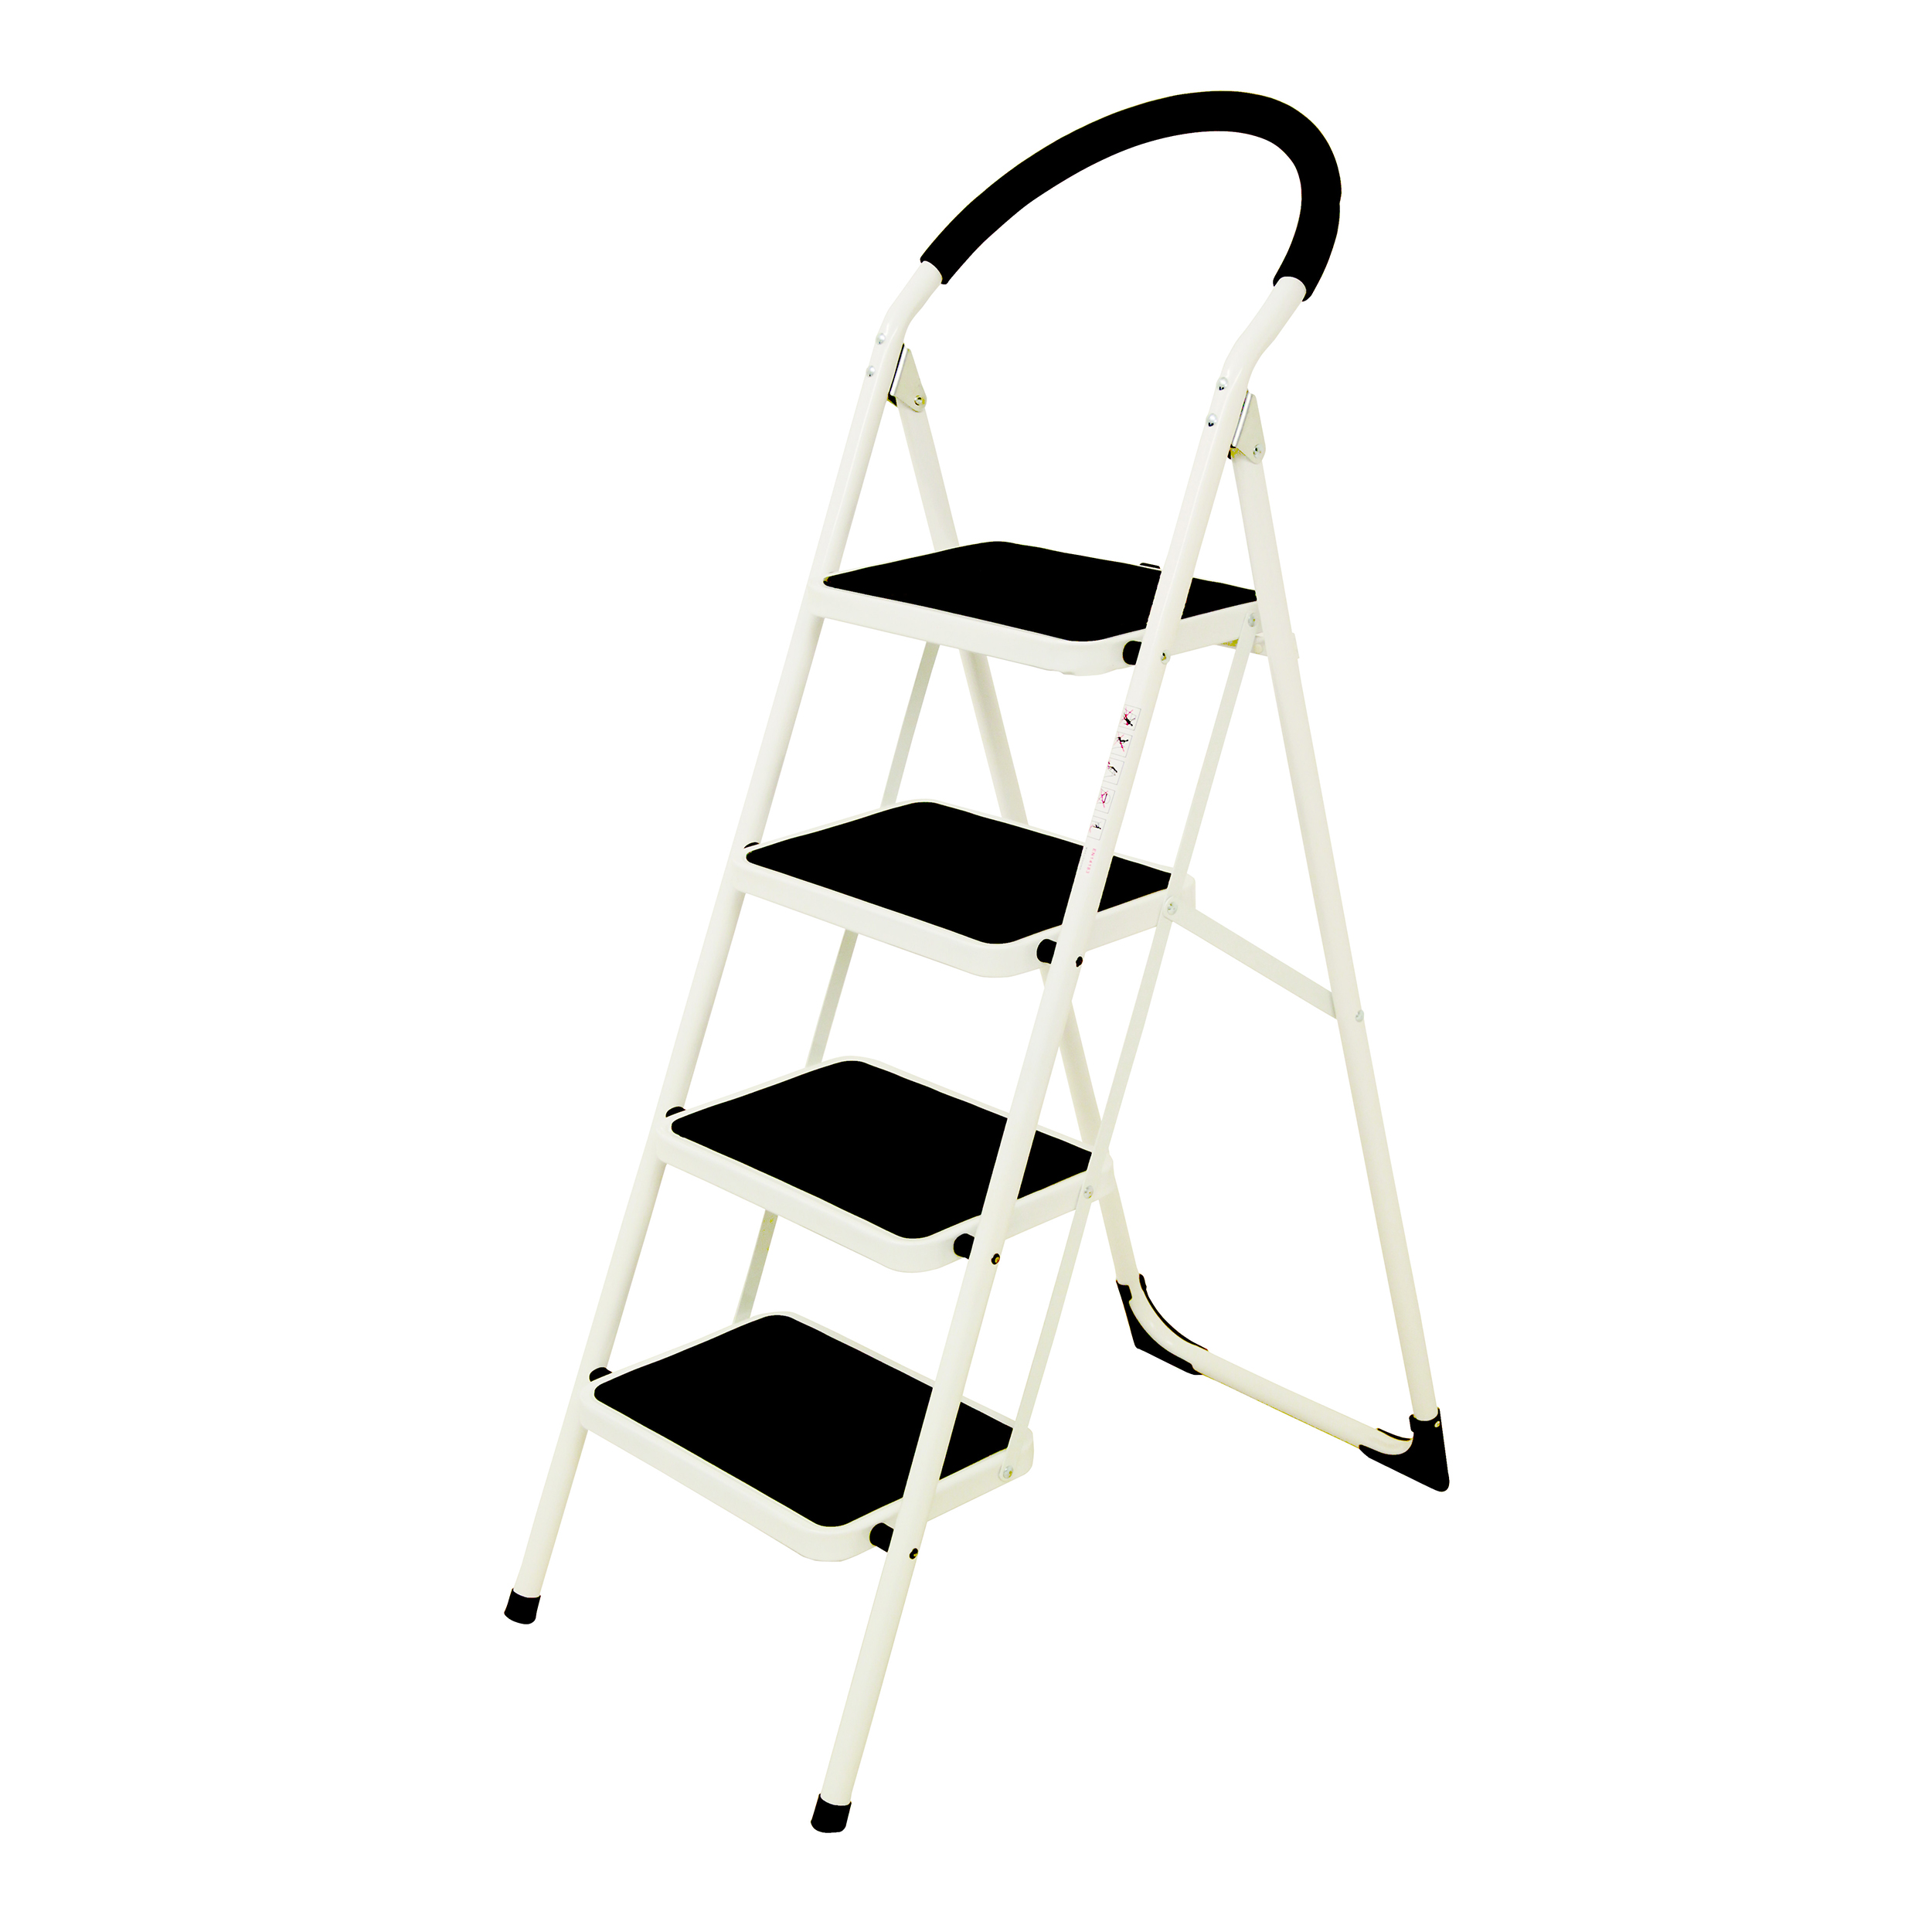 Cleaning Chemicals Folding Step Ladder 4 Tread Capacity 150kg White Frame